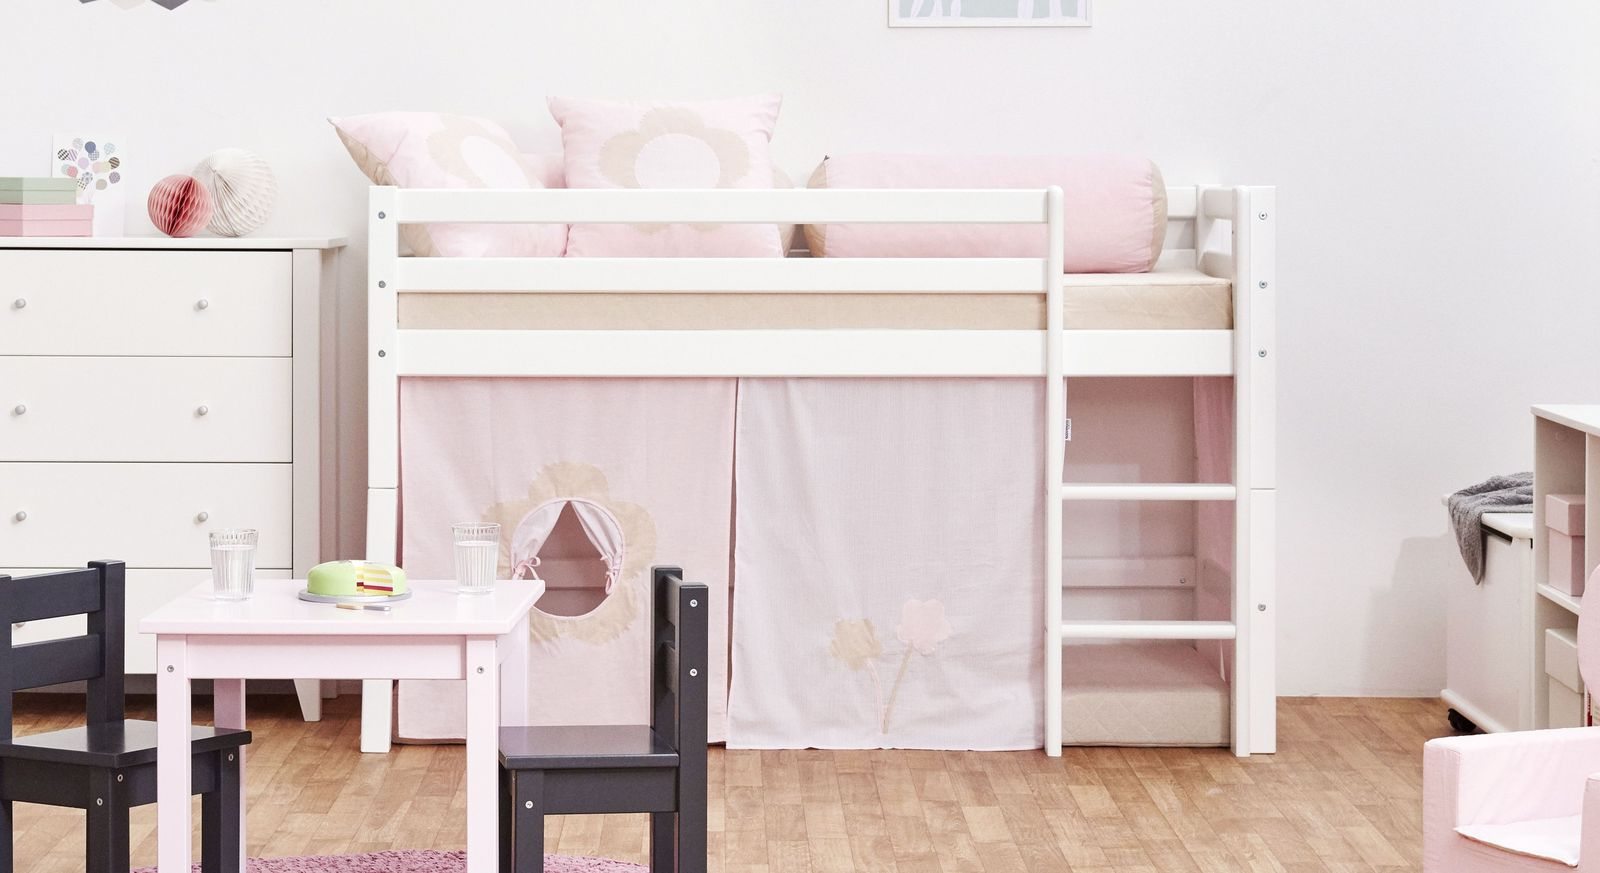 gro z gig wei e prinzessin bettrahmen bilder. Black Bedroom Furniture Sets. Home Design Ideas